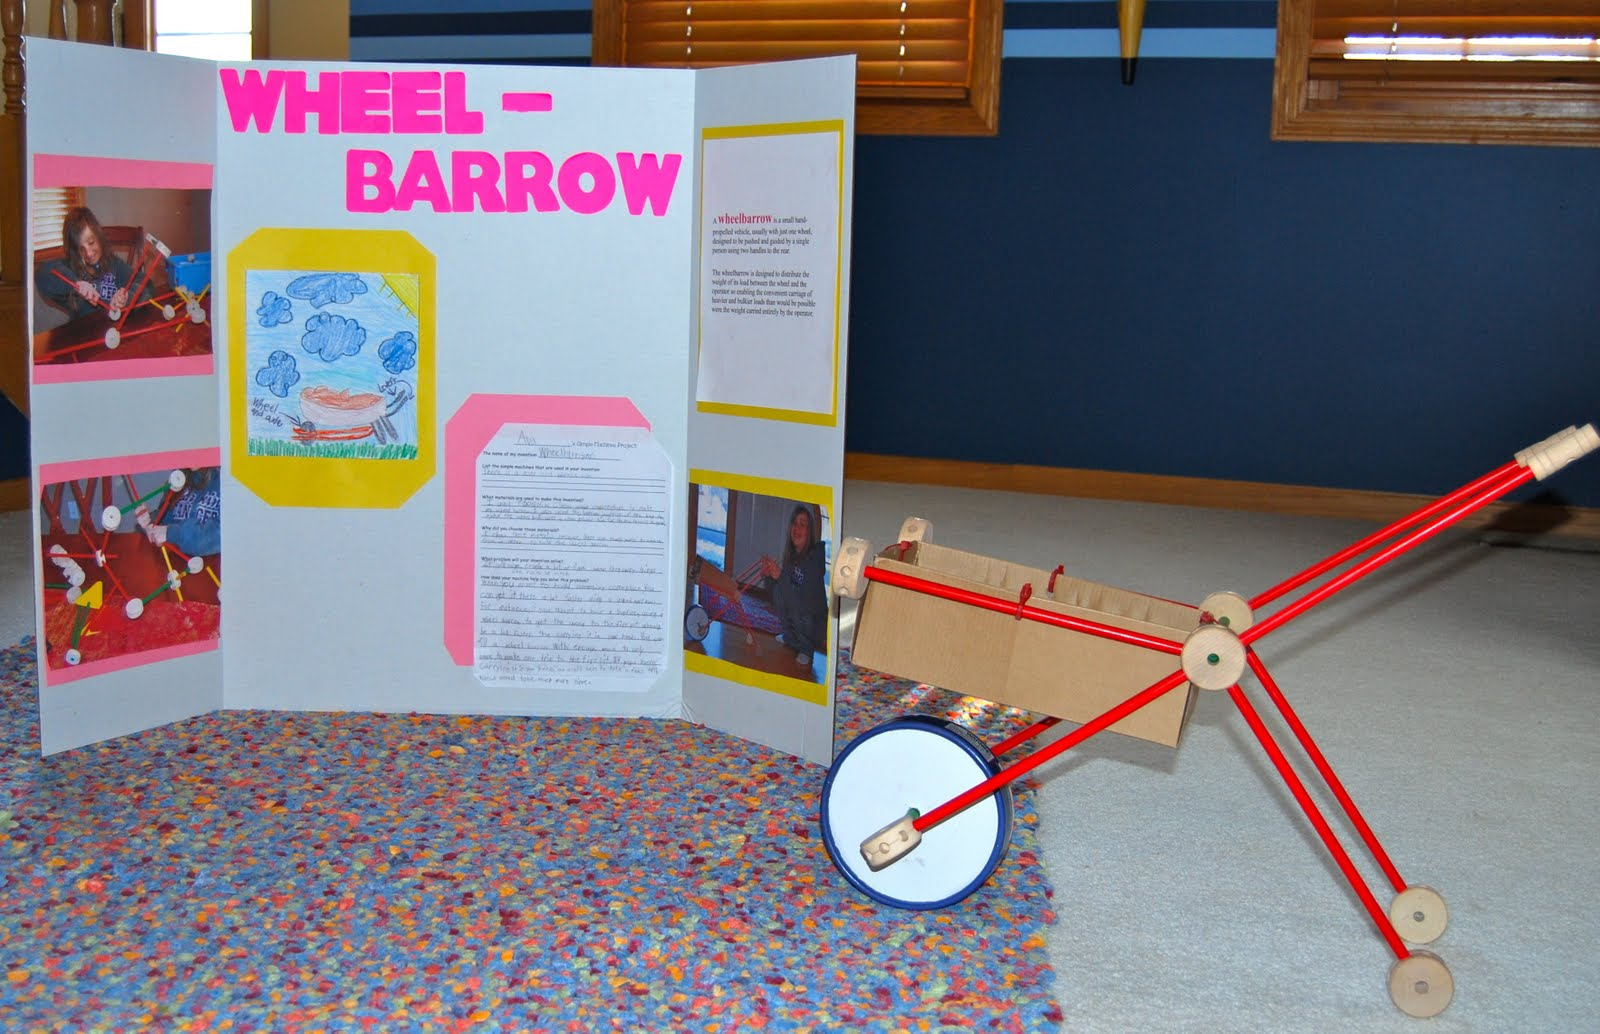 Simple machines project ideas - Ava S School Project